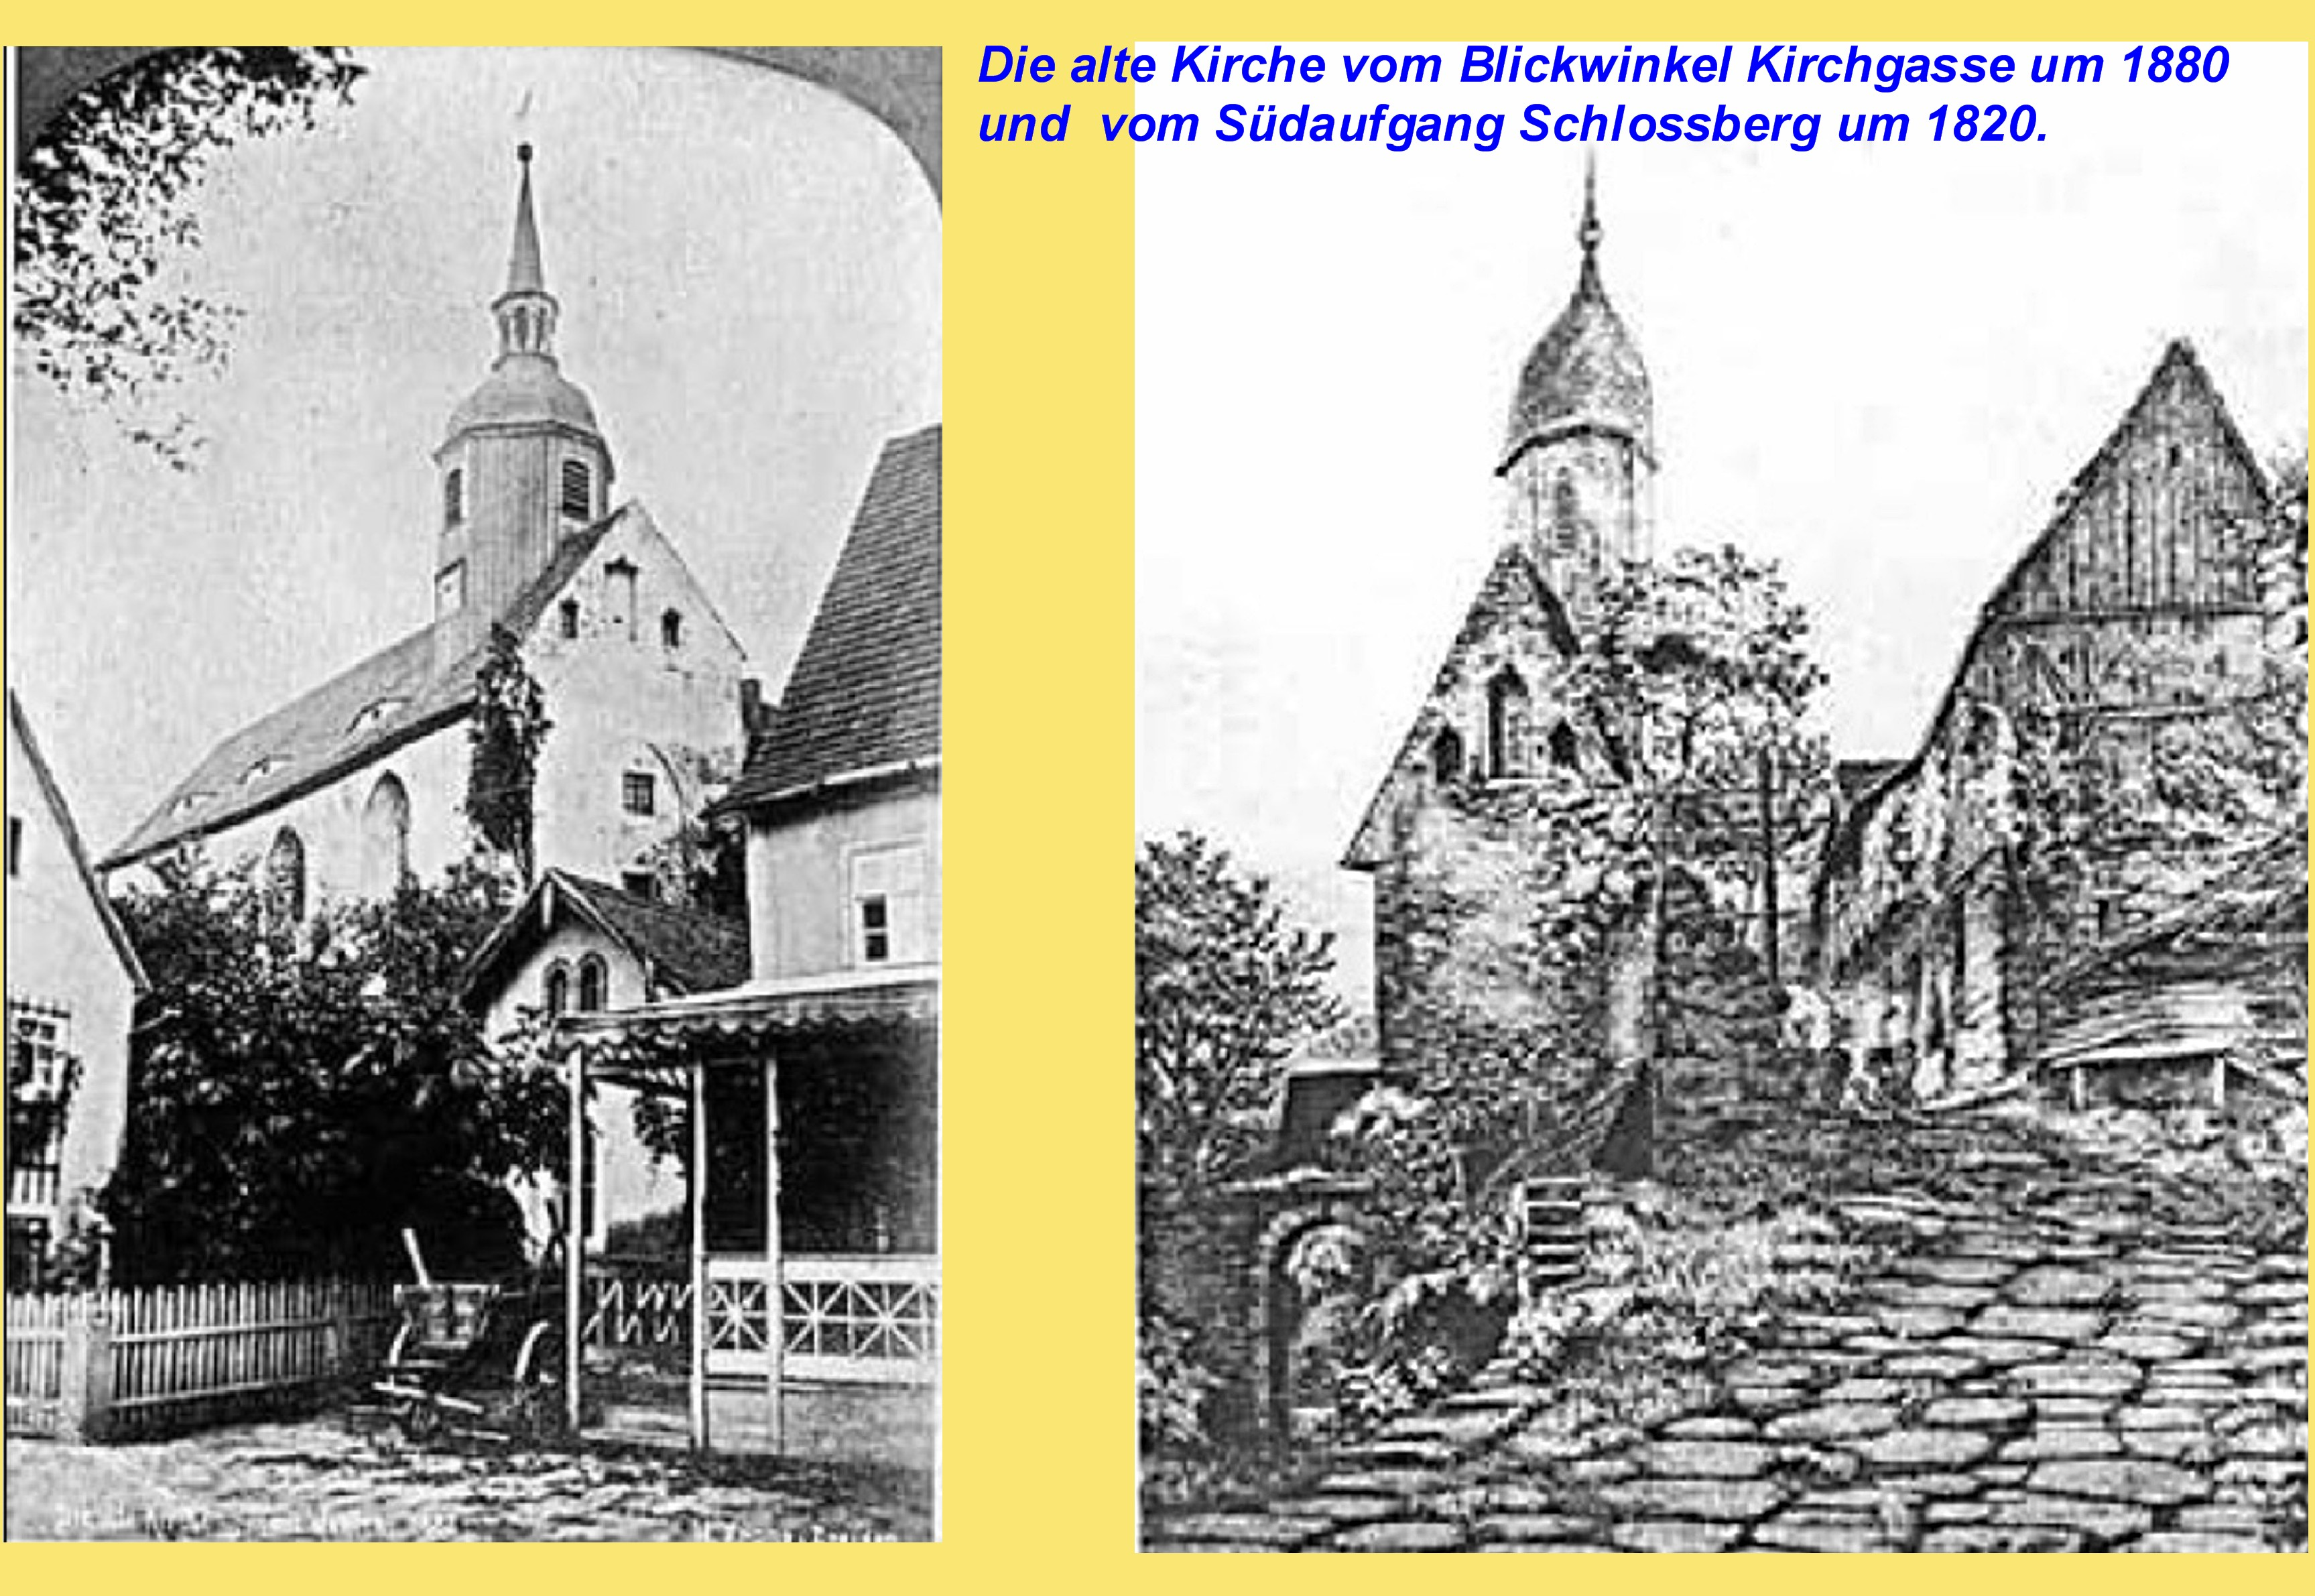 alteKirche1850